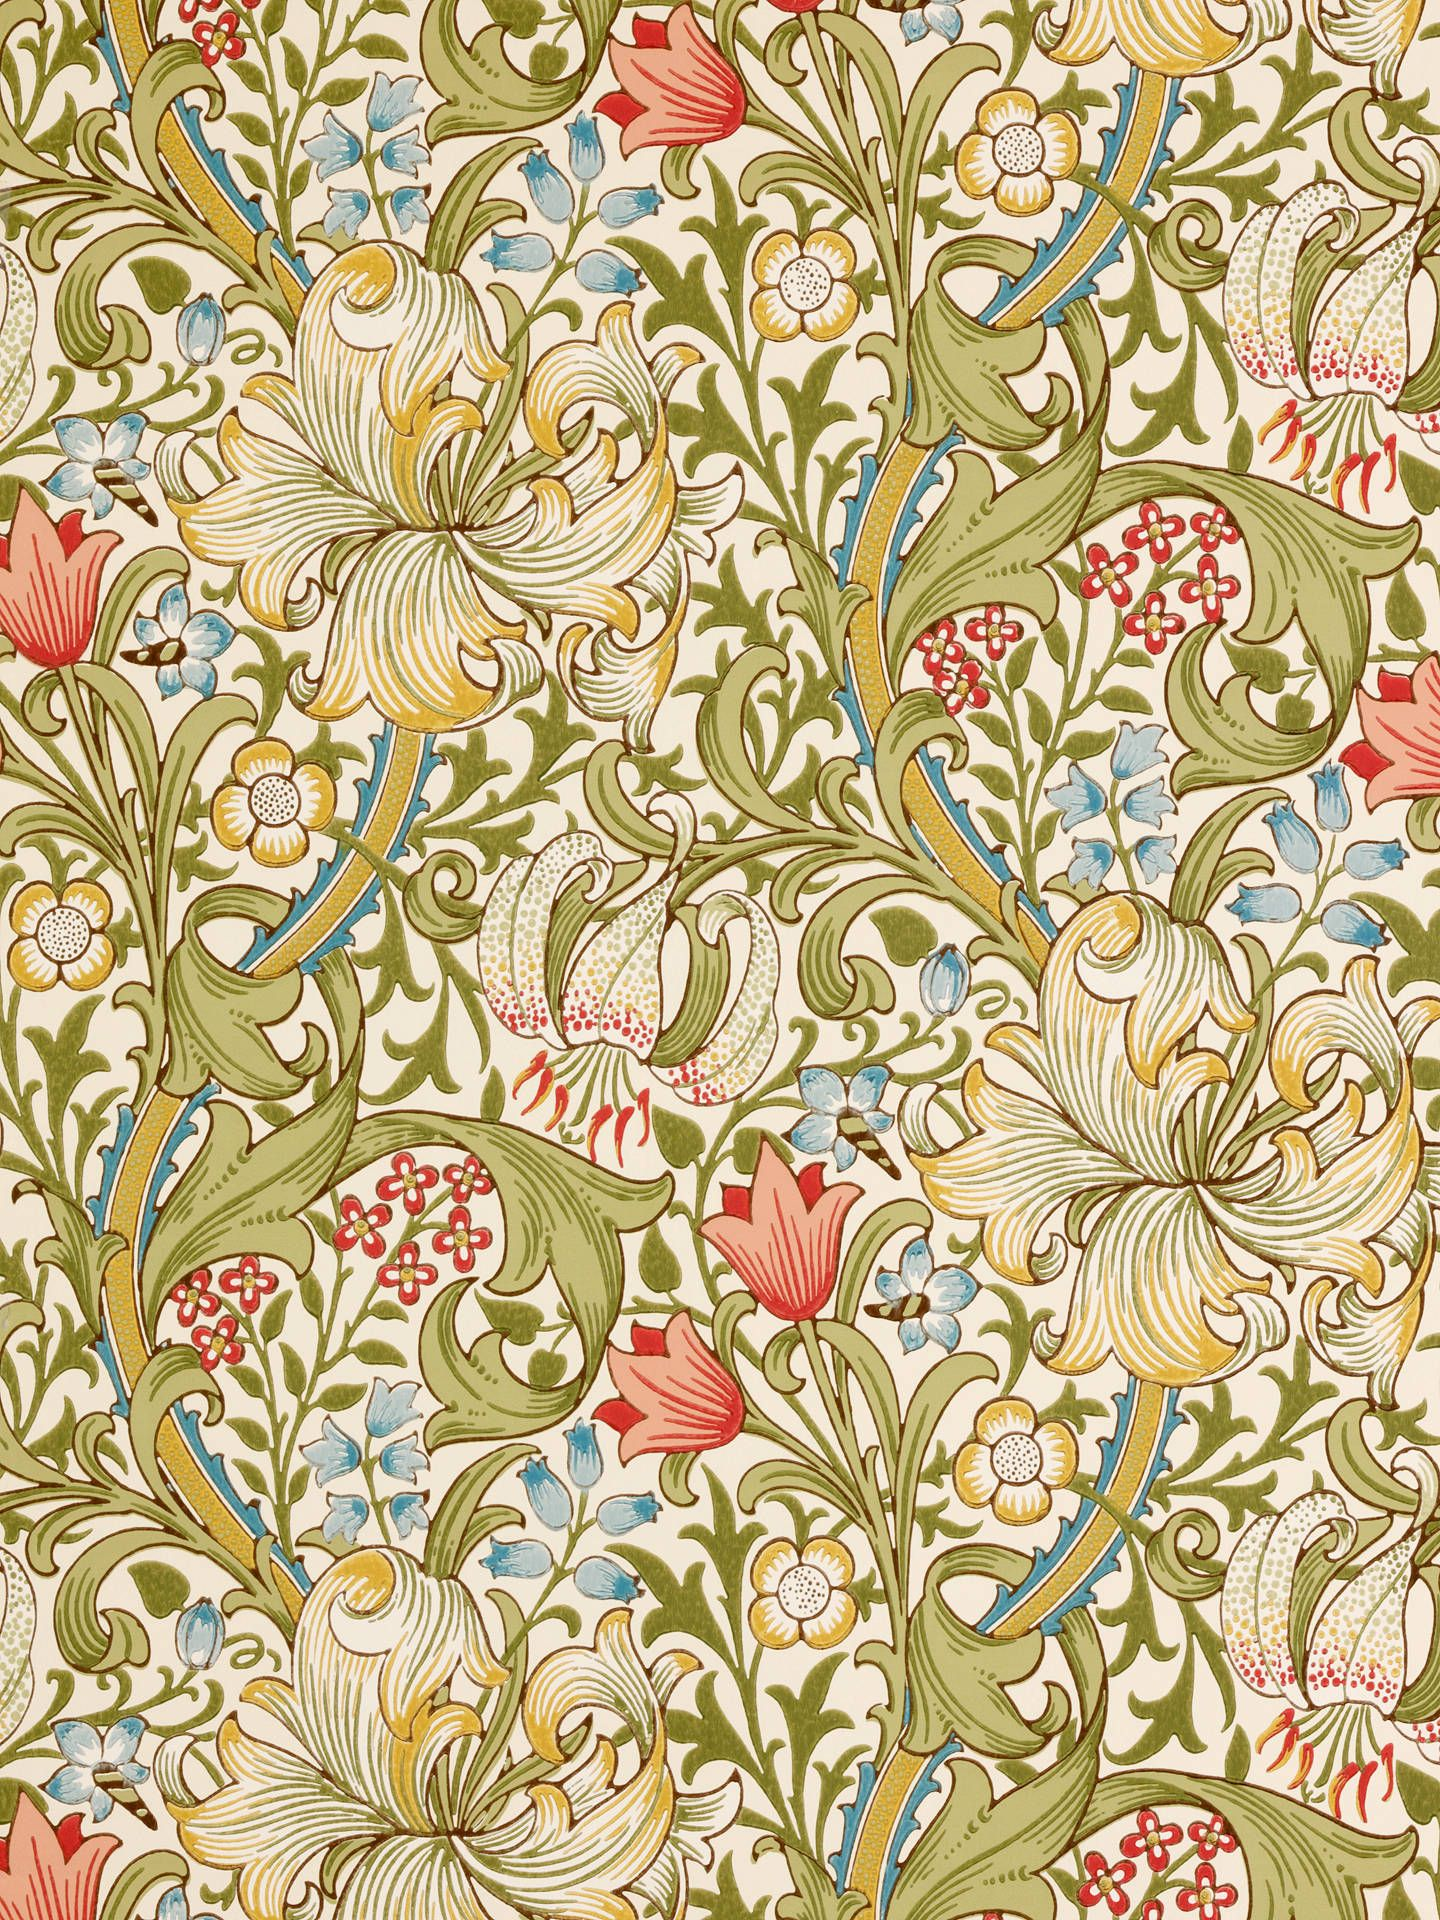 Morris & Co. Golden Lily, Green / Red, 210398 Morris